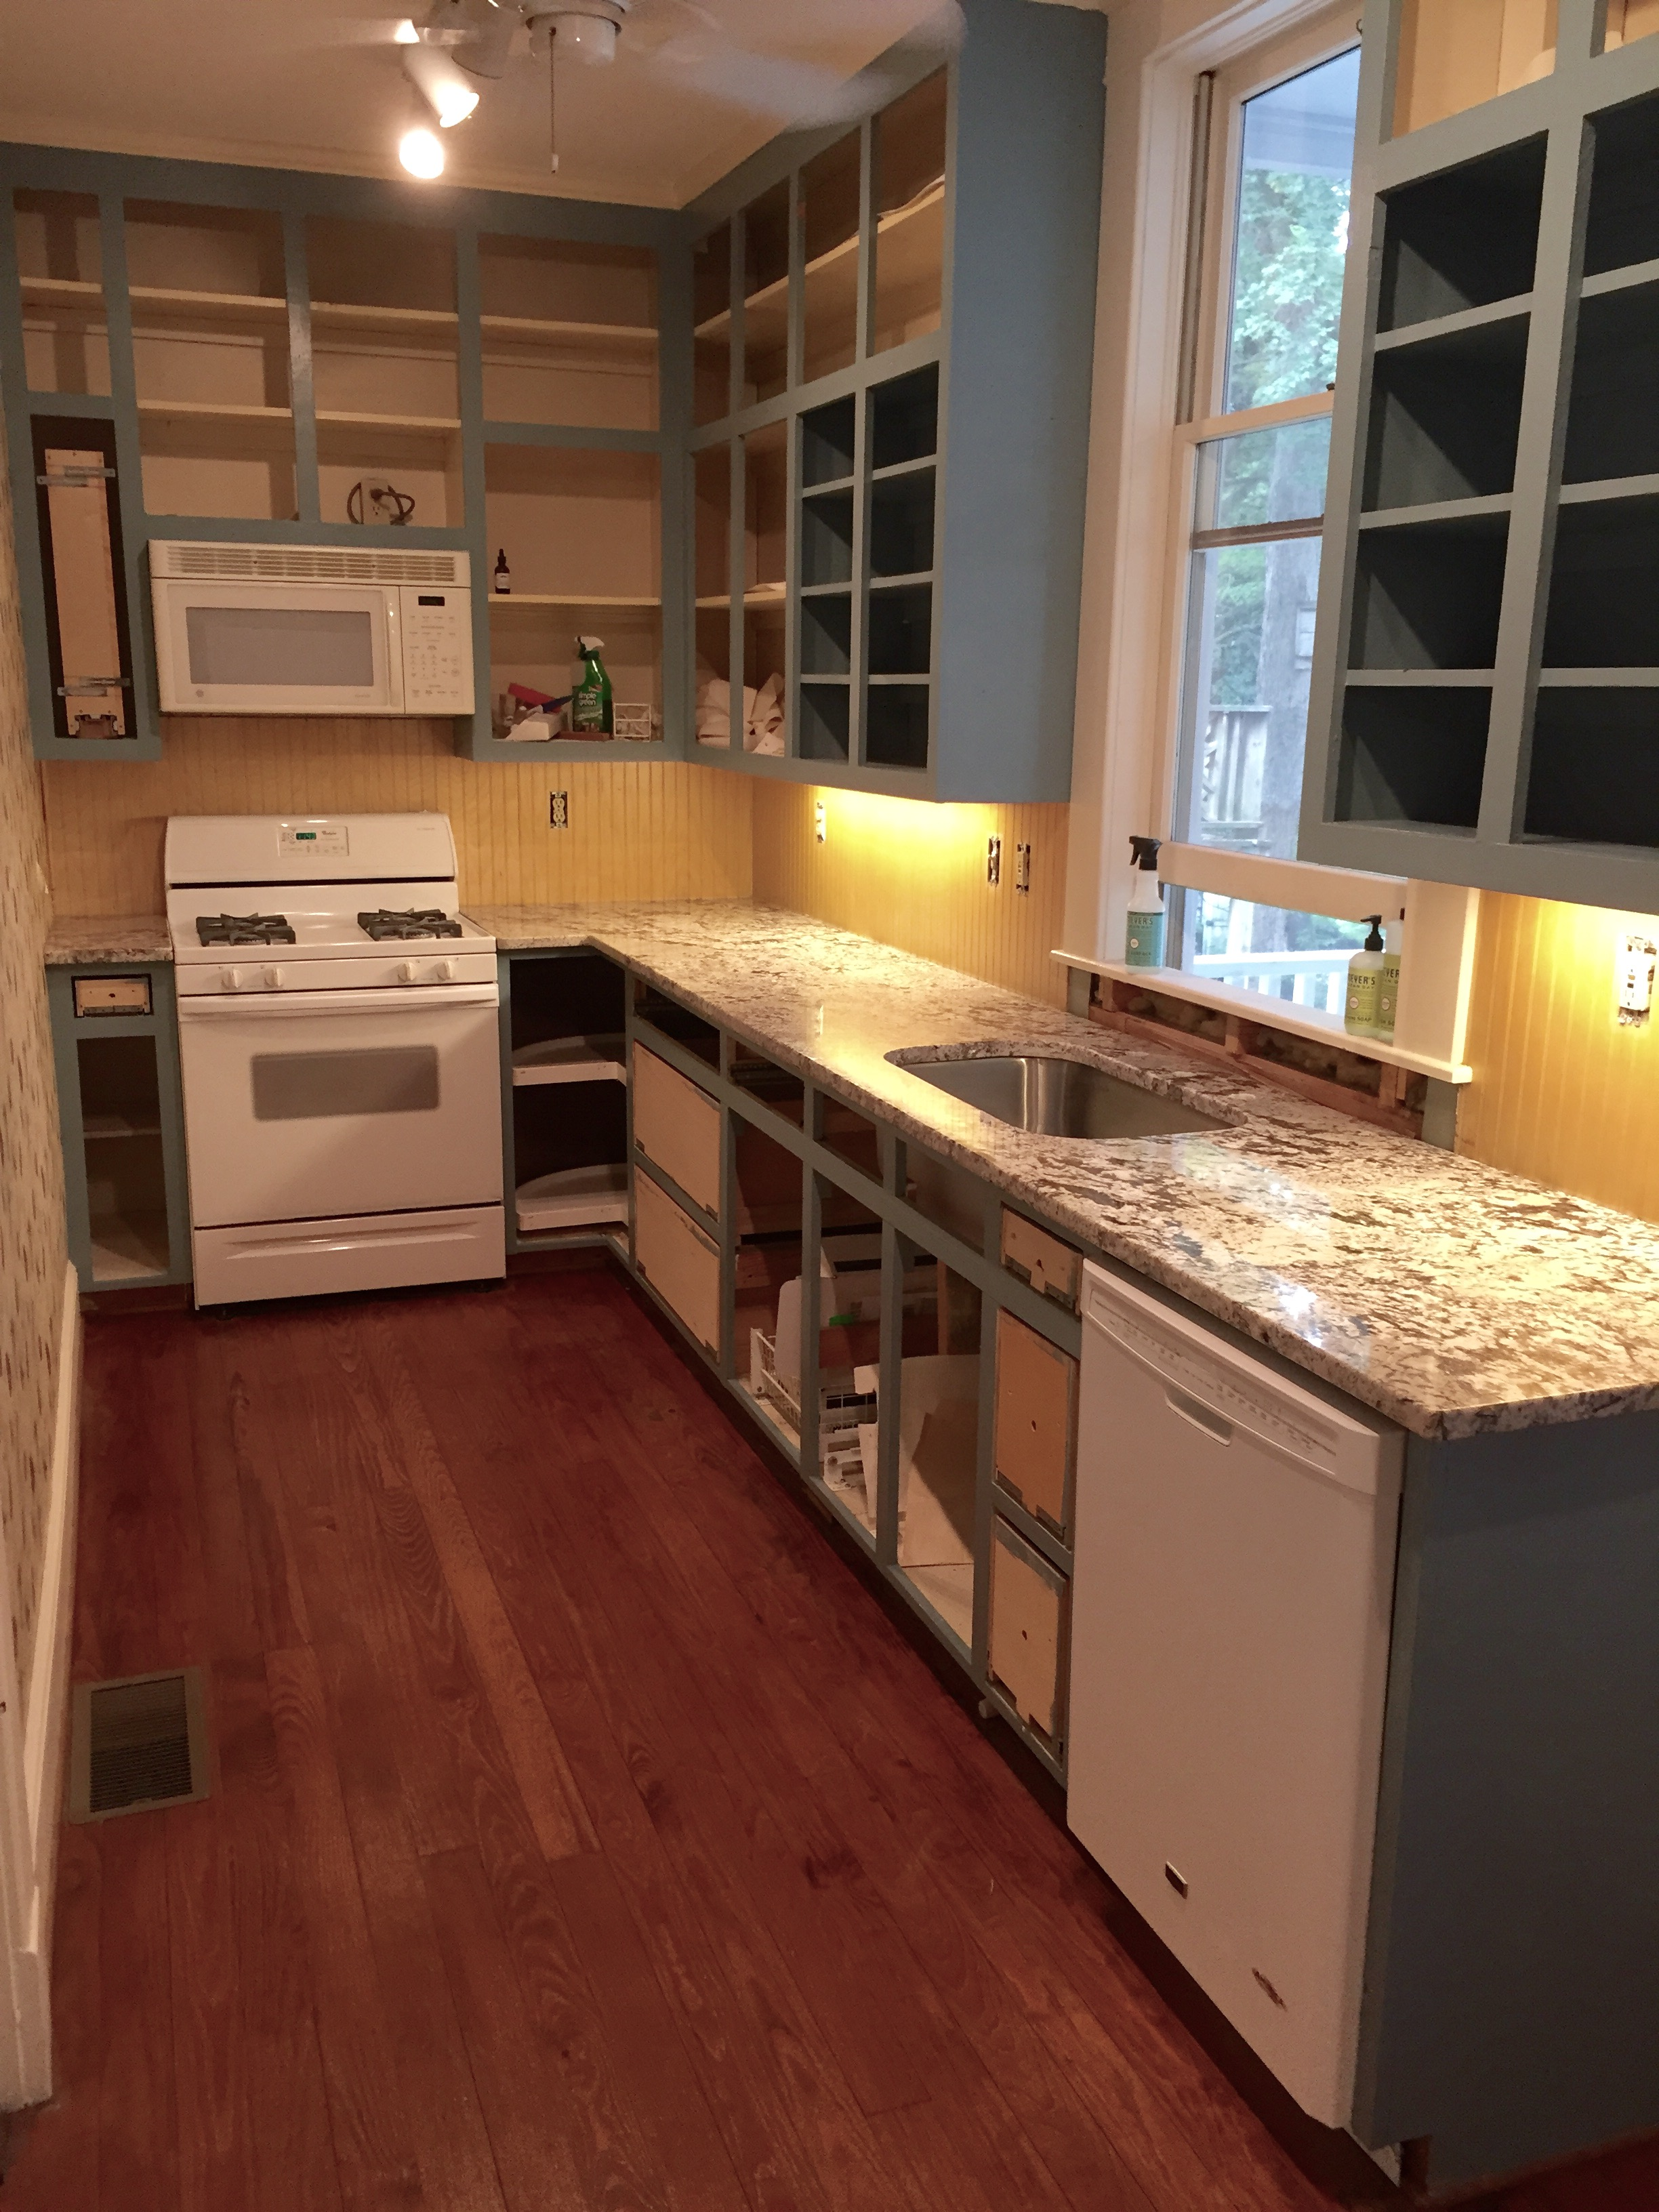 After the cabinet frames were painted, the granite was installed